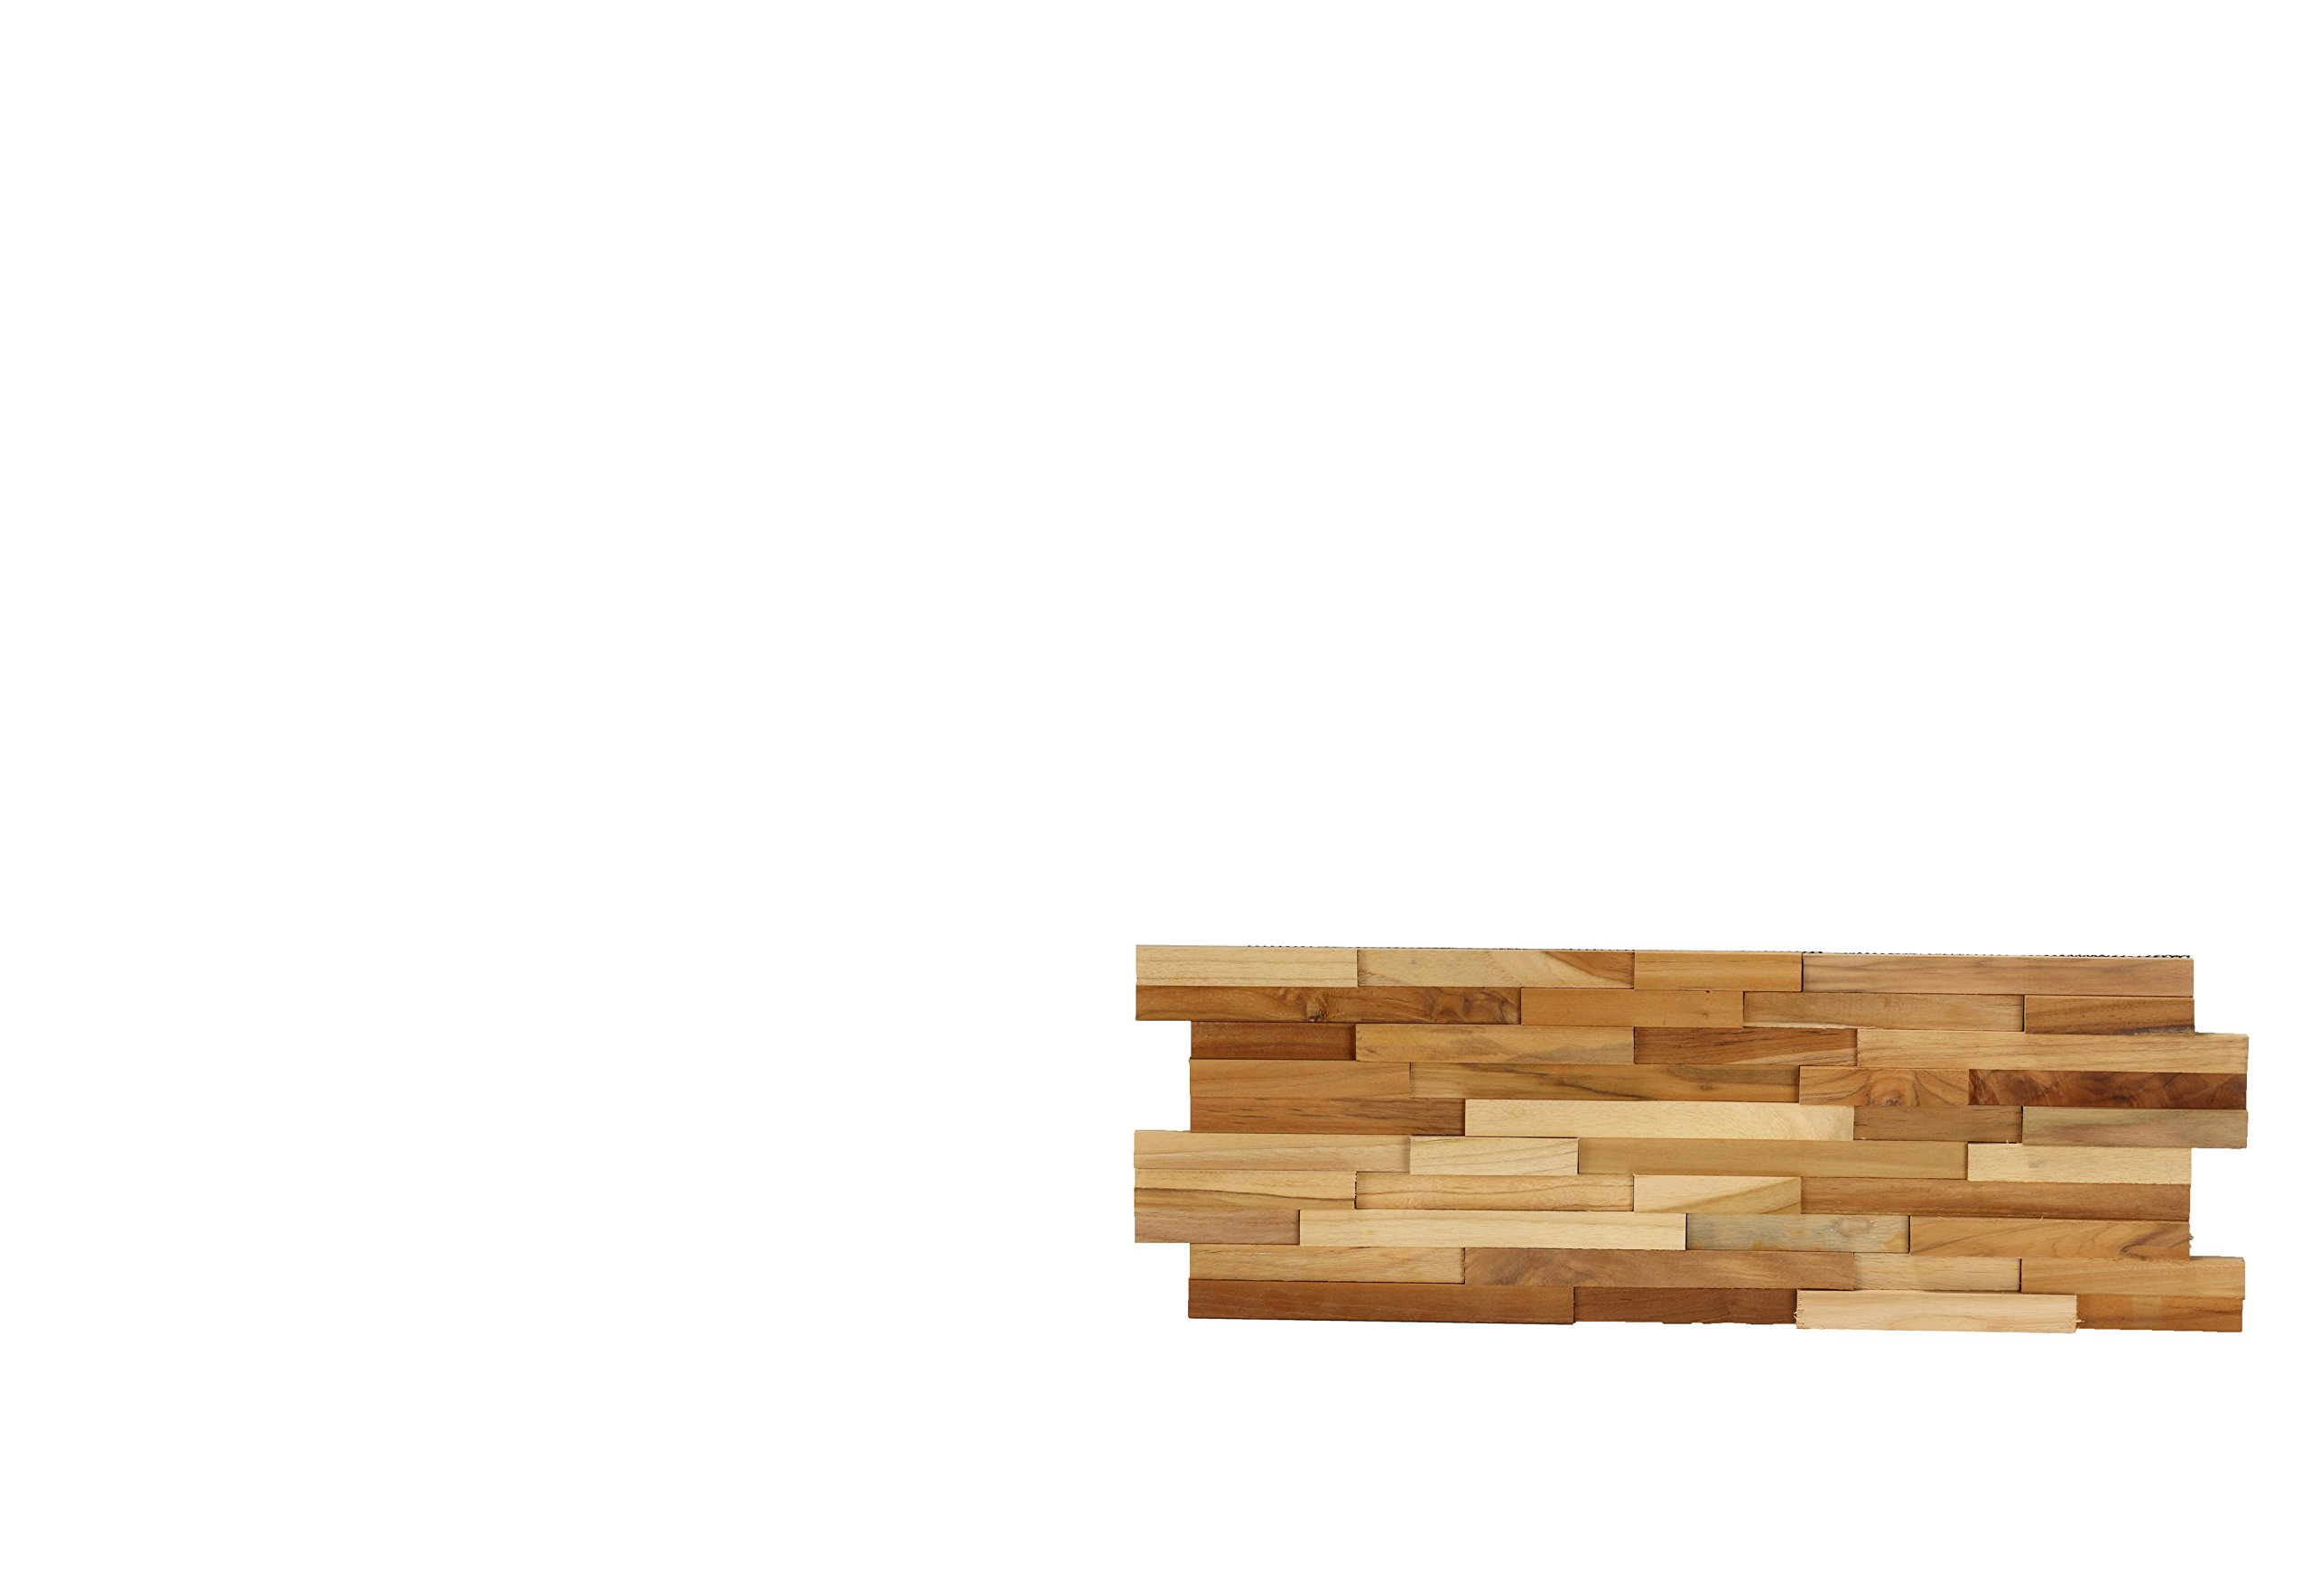 Bare Decor EZ-Wall 3D Mosaic Tile in Solid Teak Wood, Set of 10 Natural Finish Tiles by Bare Decor